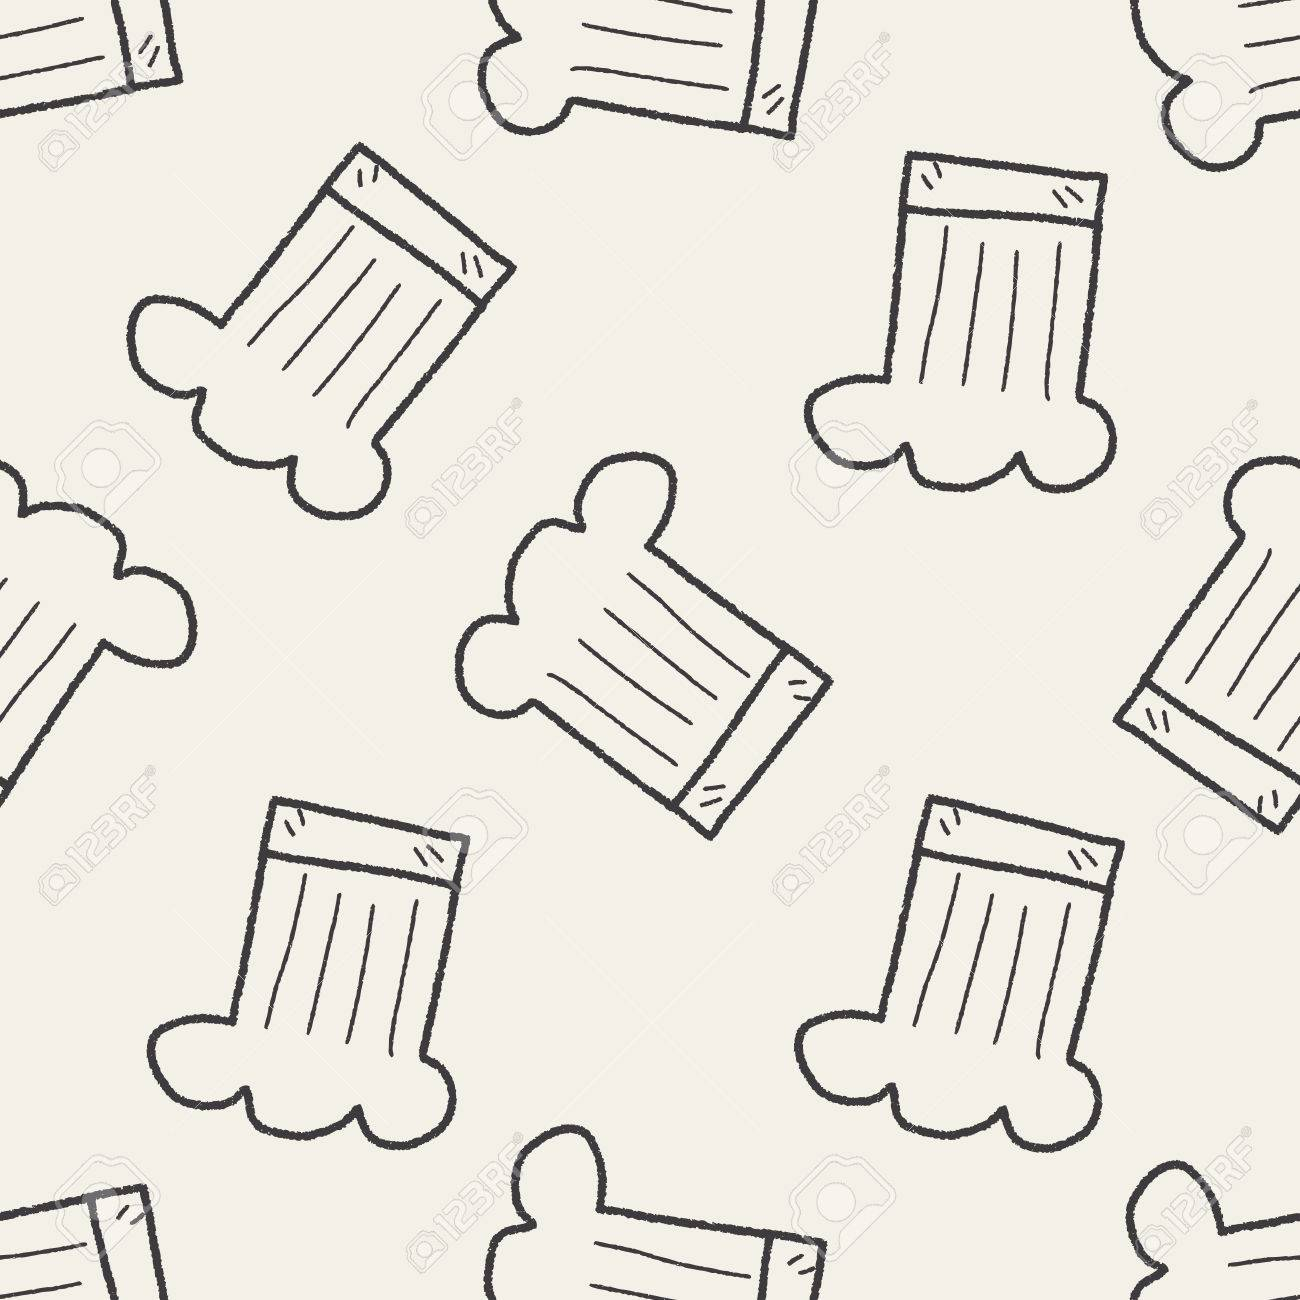 ab2bb7349cd Chef Hat Doodle Seamless Pattern Background Royalty Free Cliparts ...